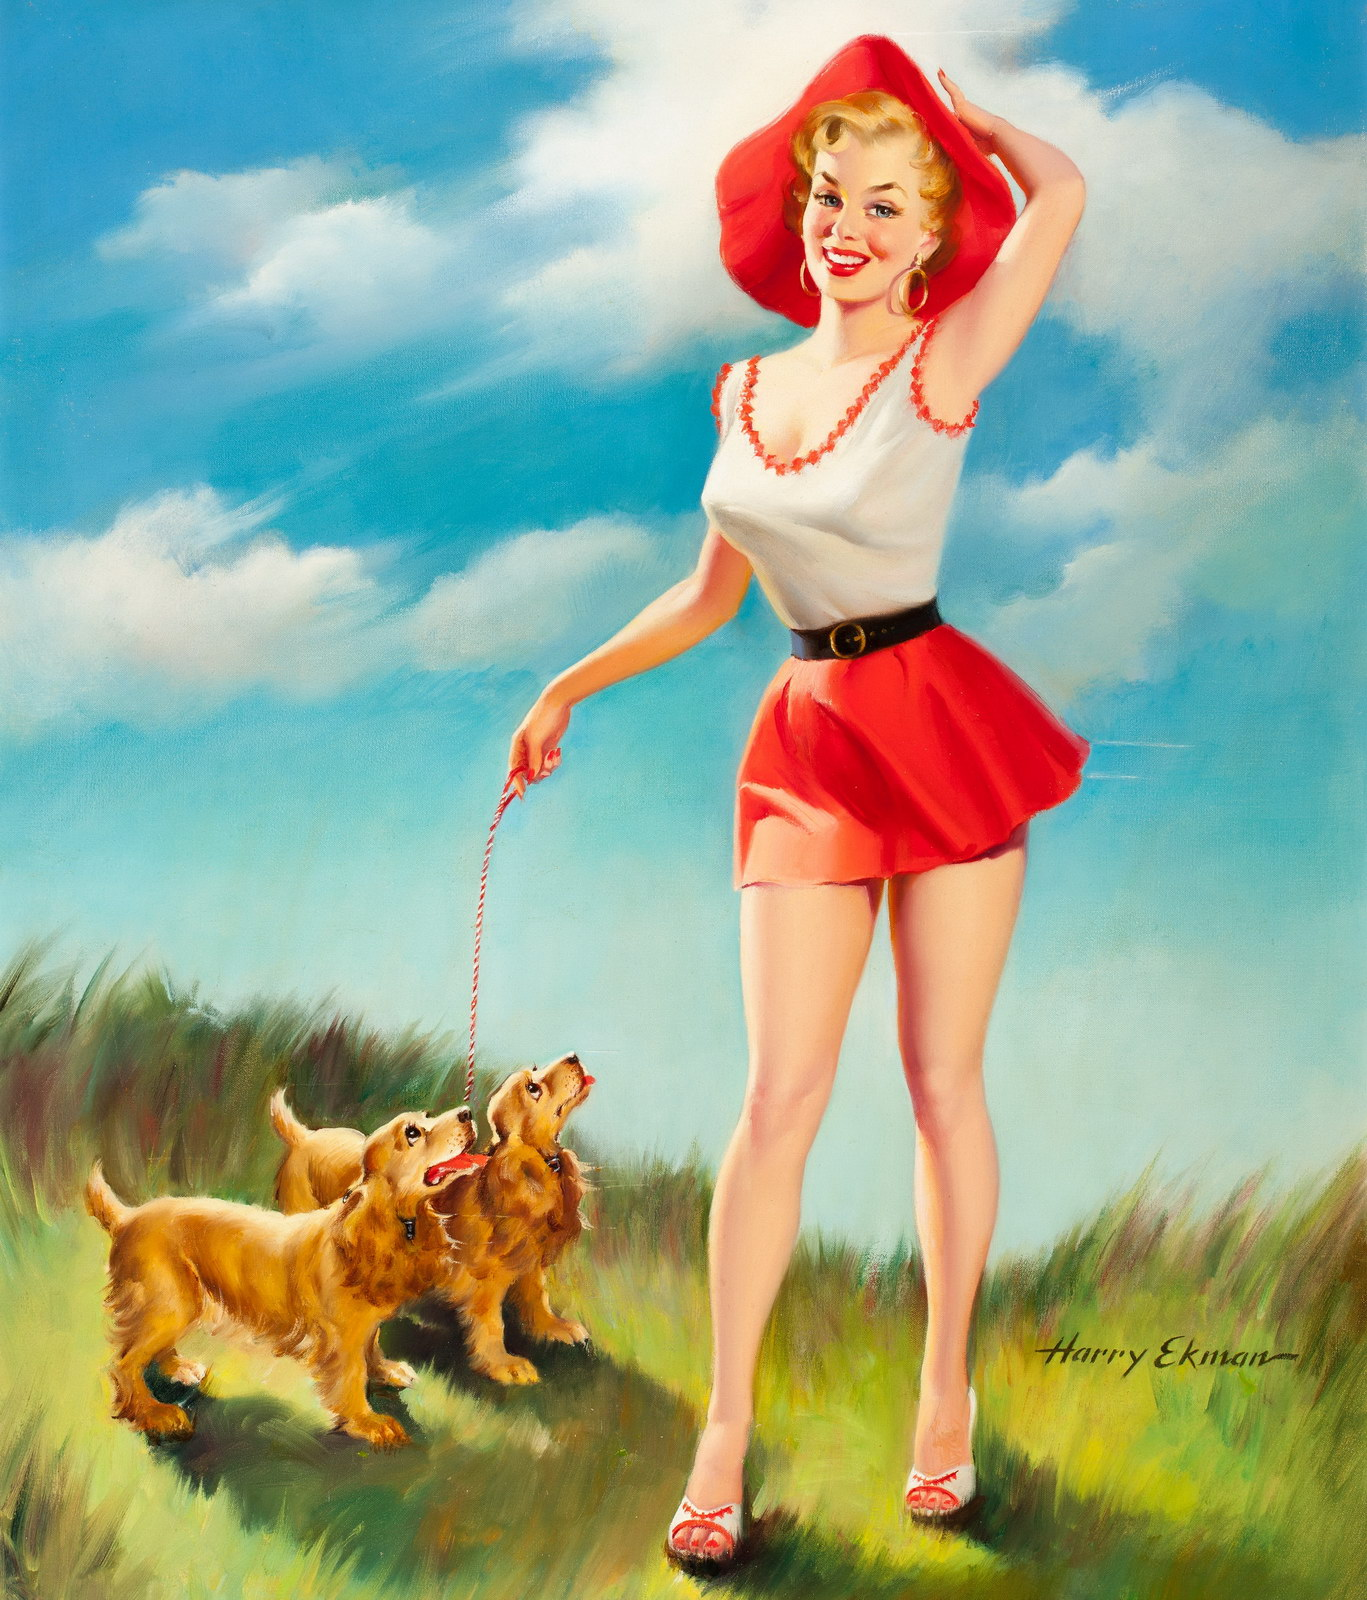 legends of pin up harry ekman pin up and cartoon girls. Black Bedroom Furniture Sets. Home Design Ideas